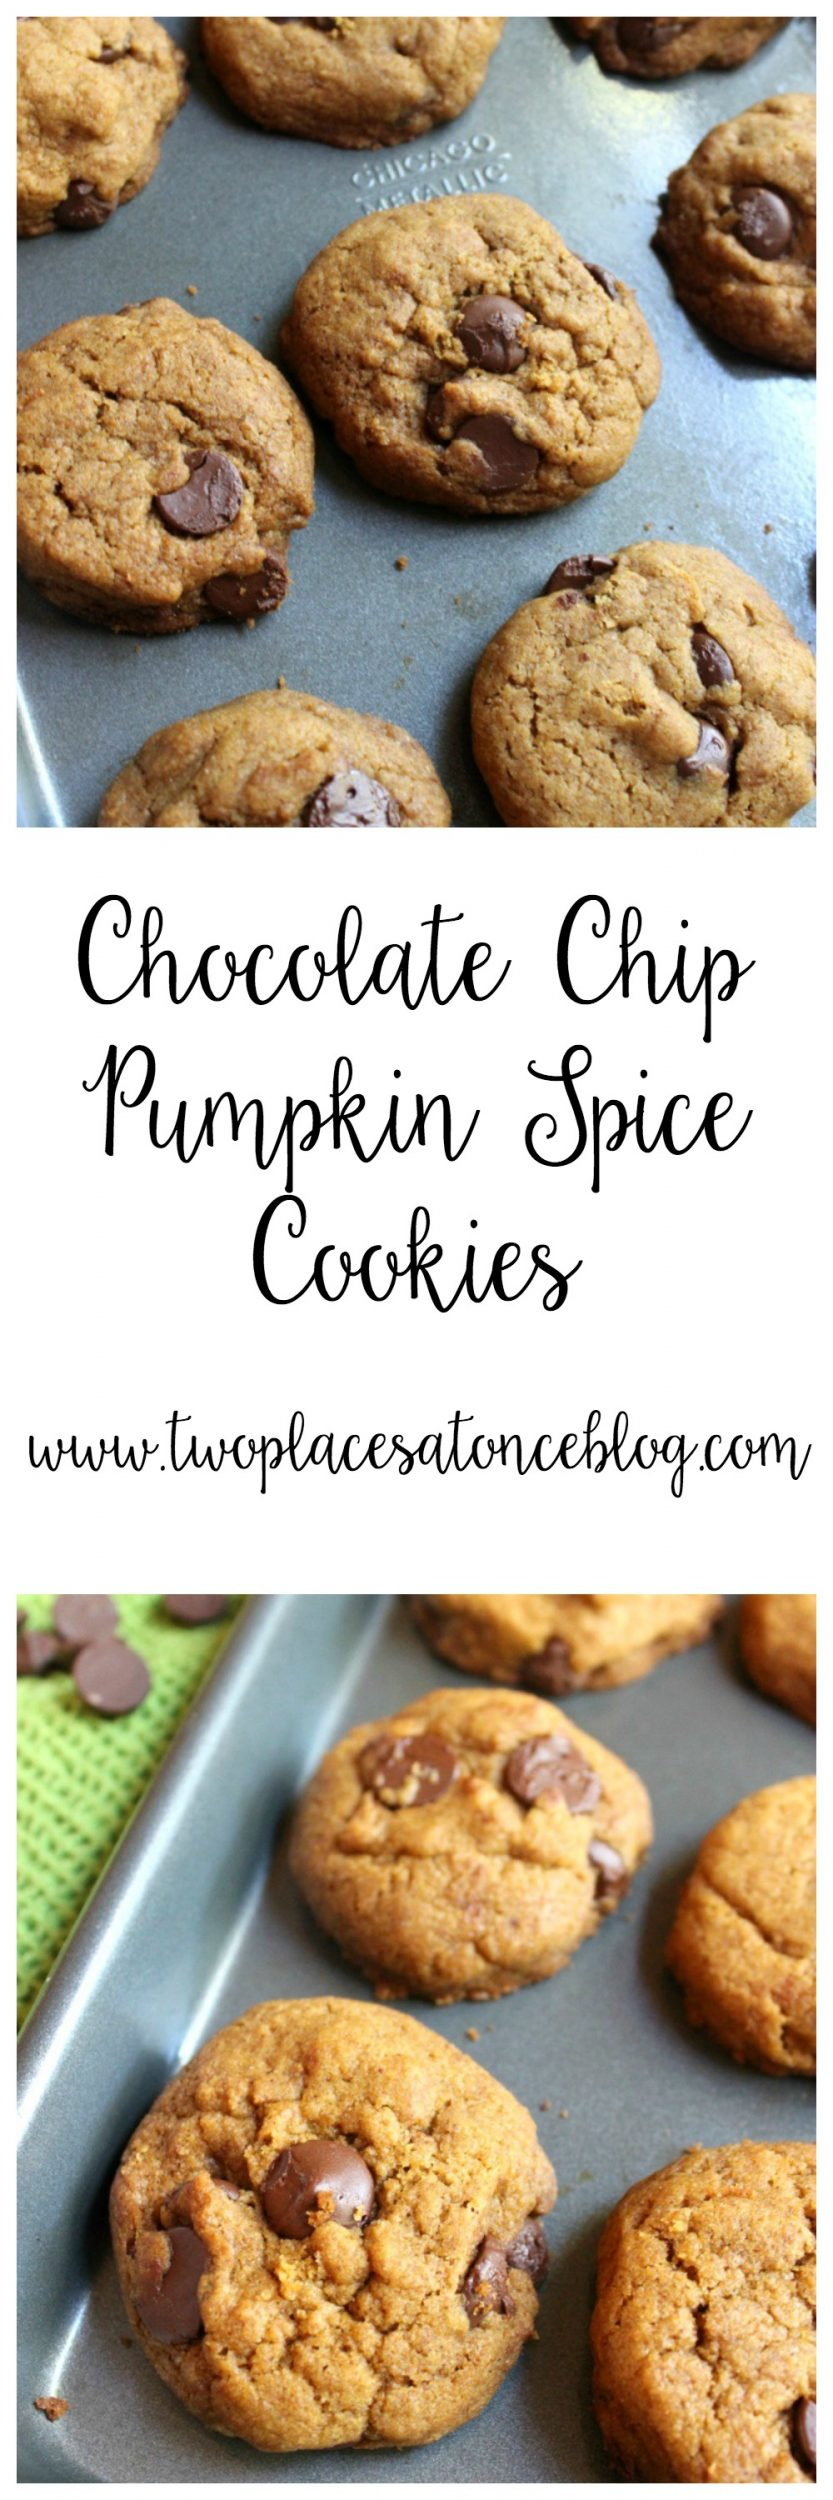 Chocolate Chip Pumpkin Spice Cookies | My Cooking Spot